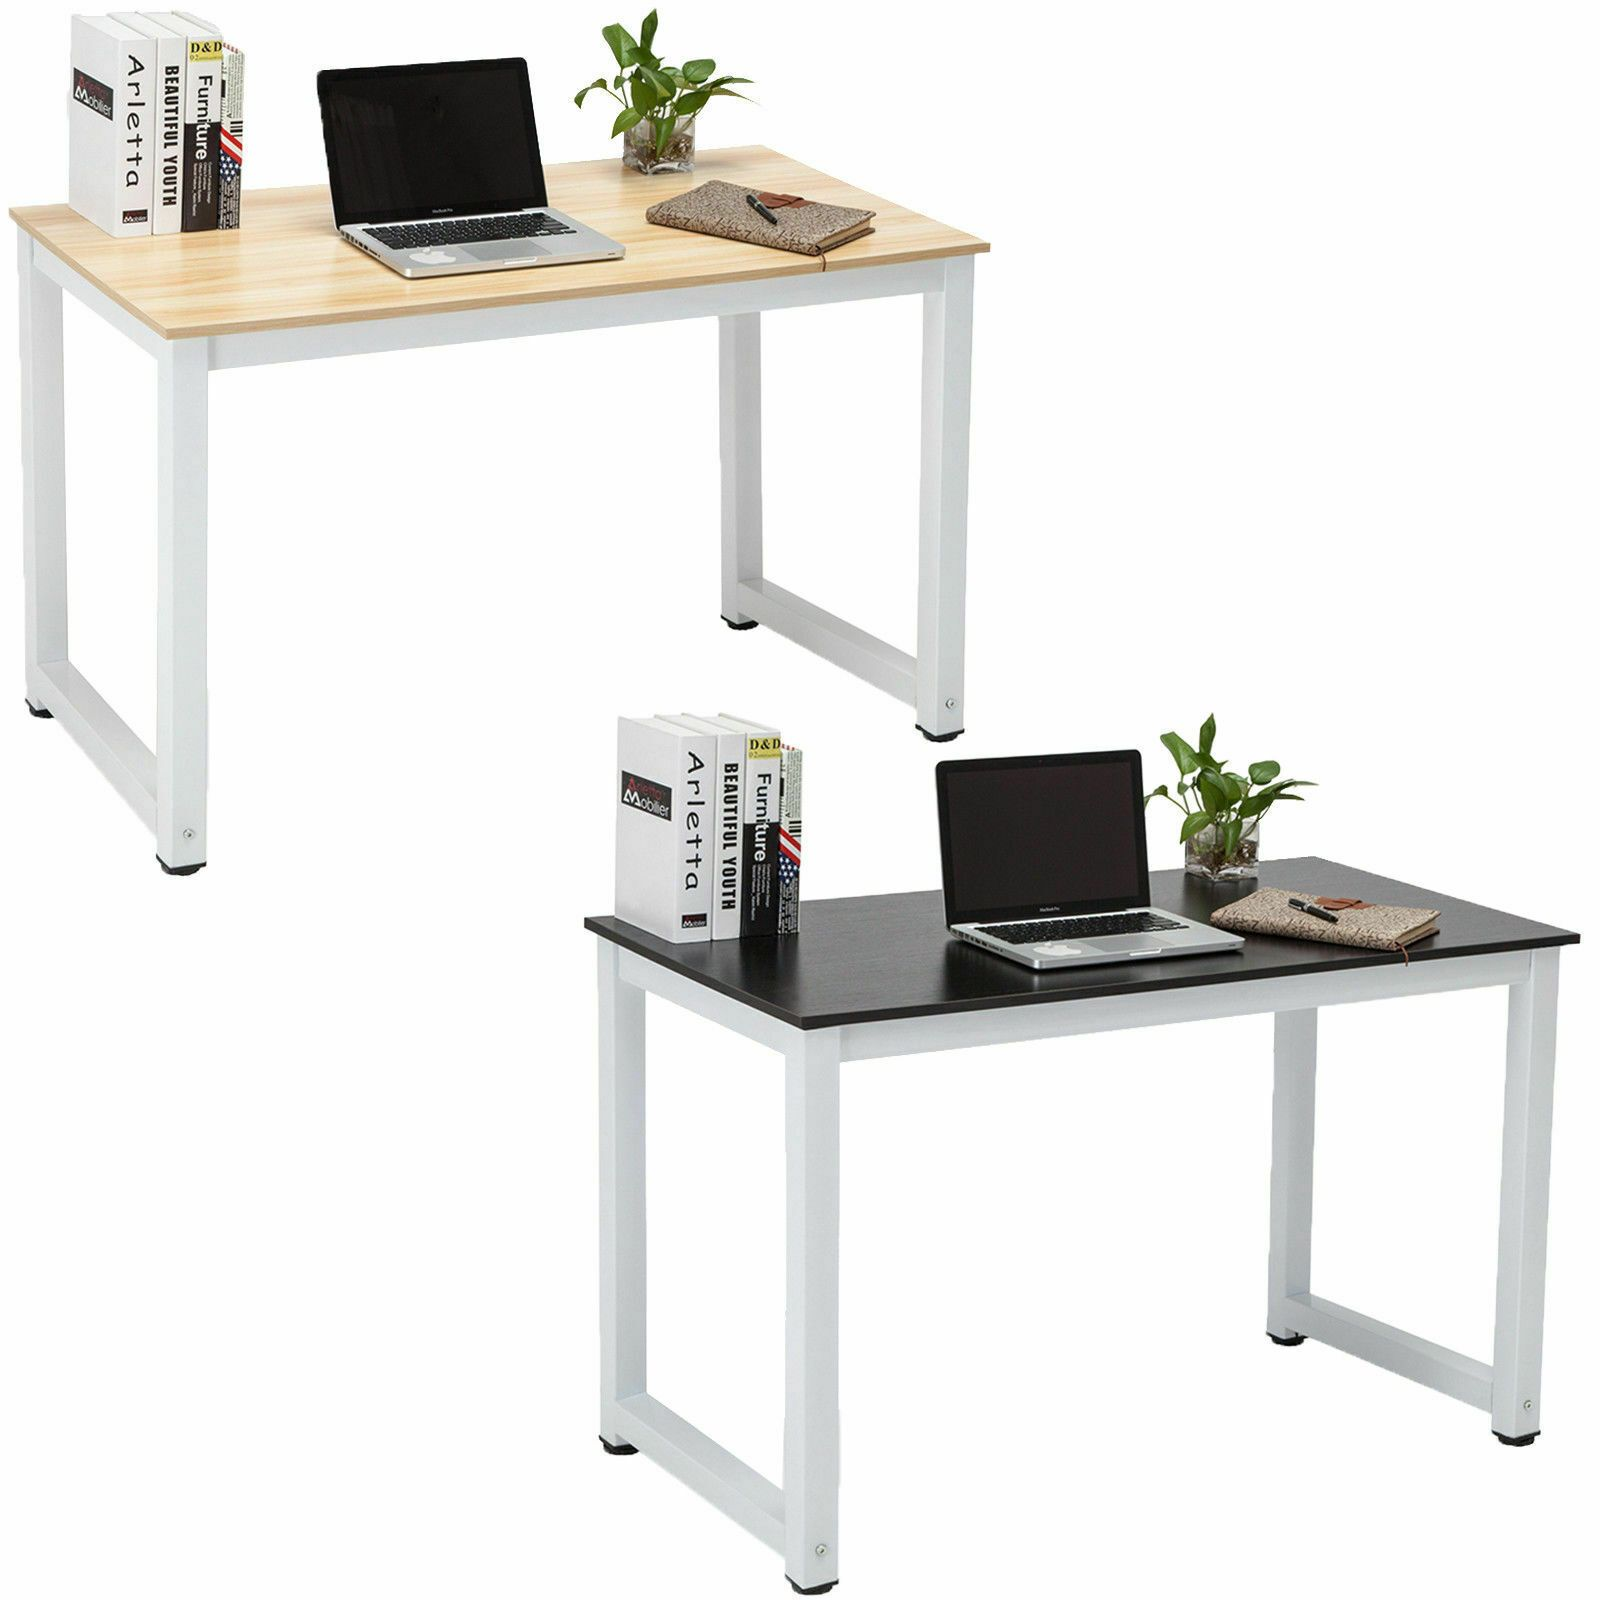 Wood Computer Desk Pc Laptop Table Study Workstation Home Office